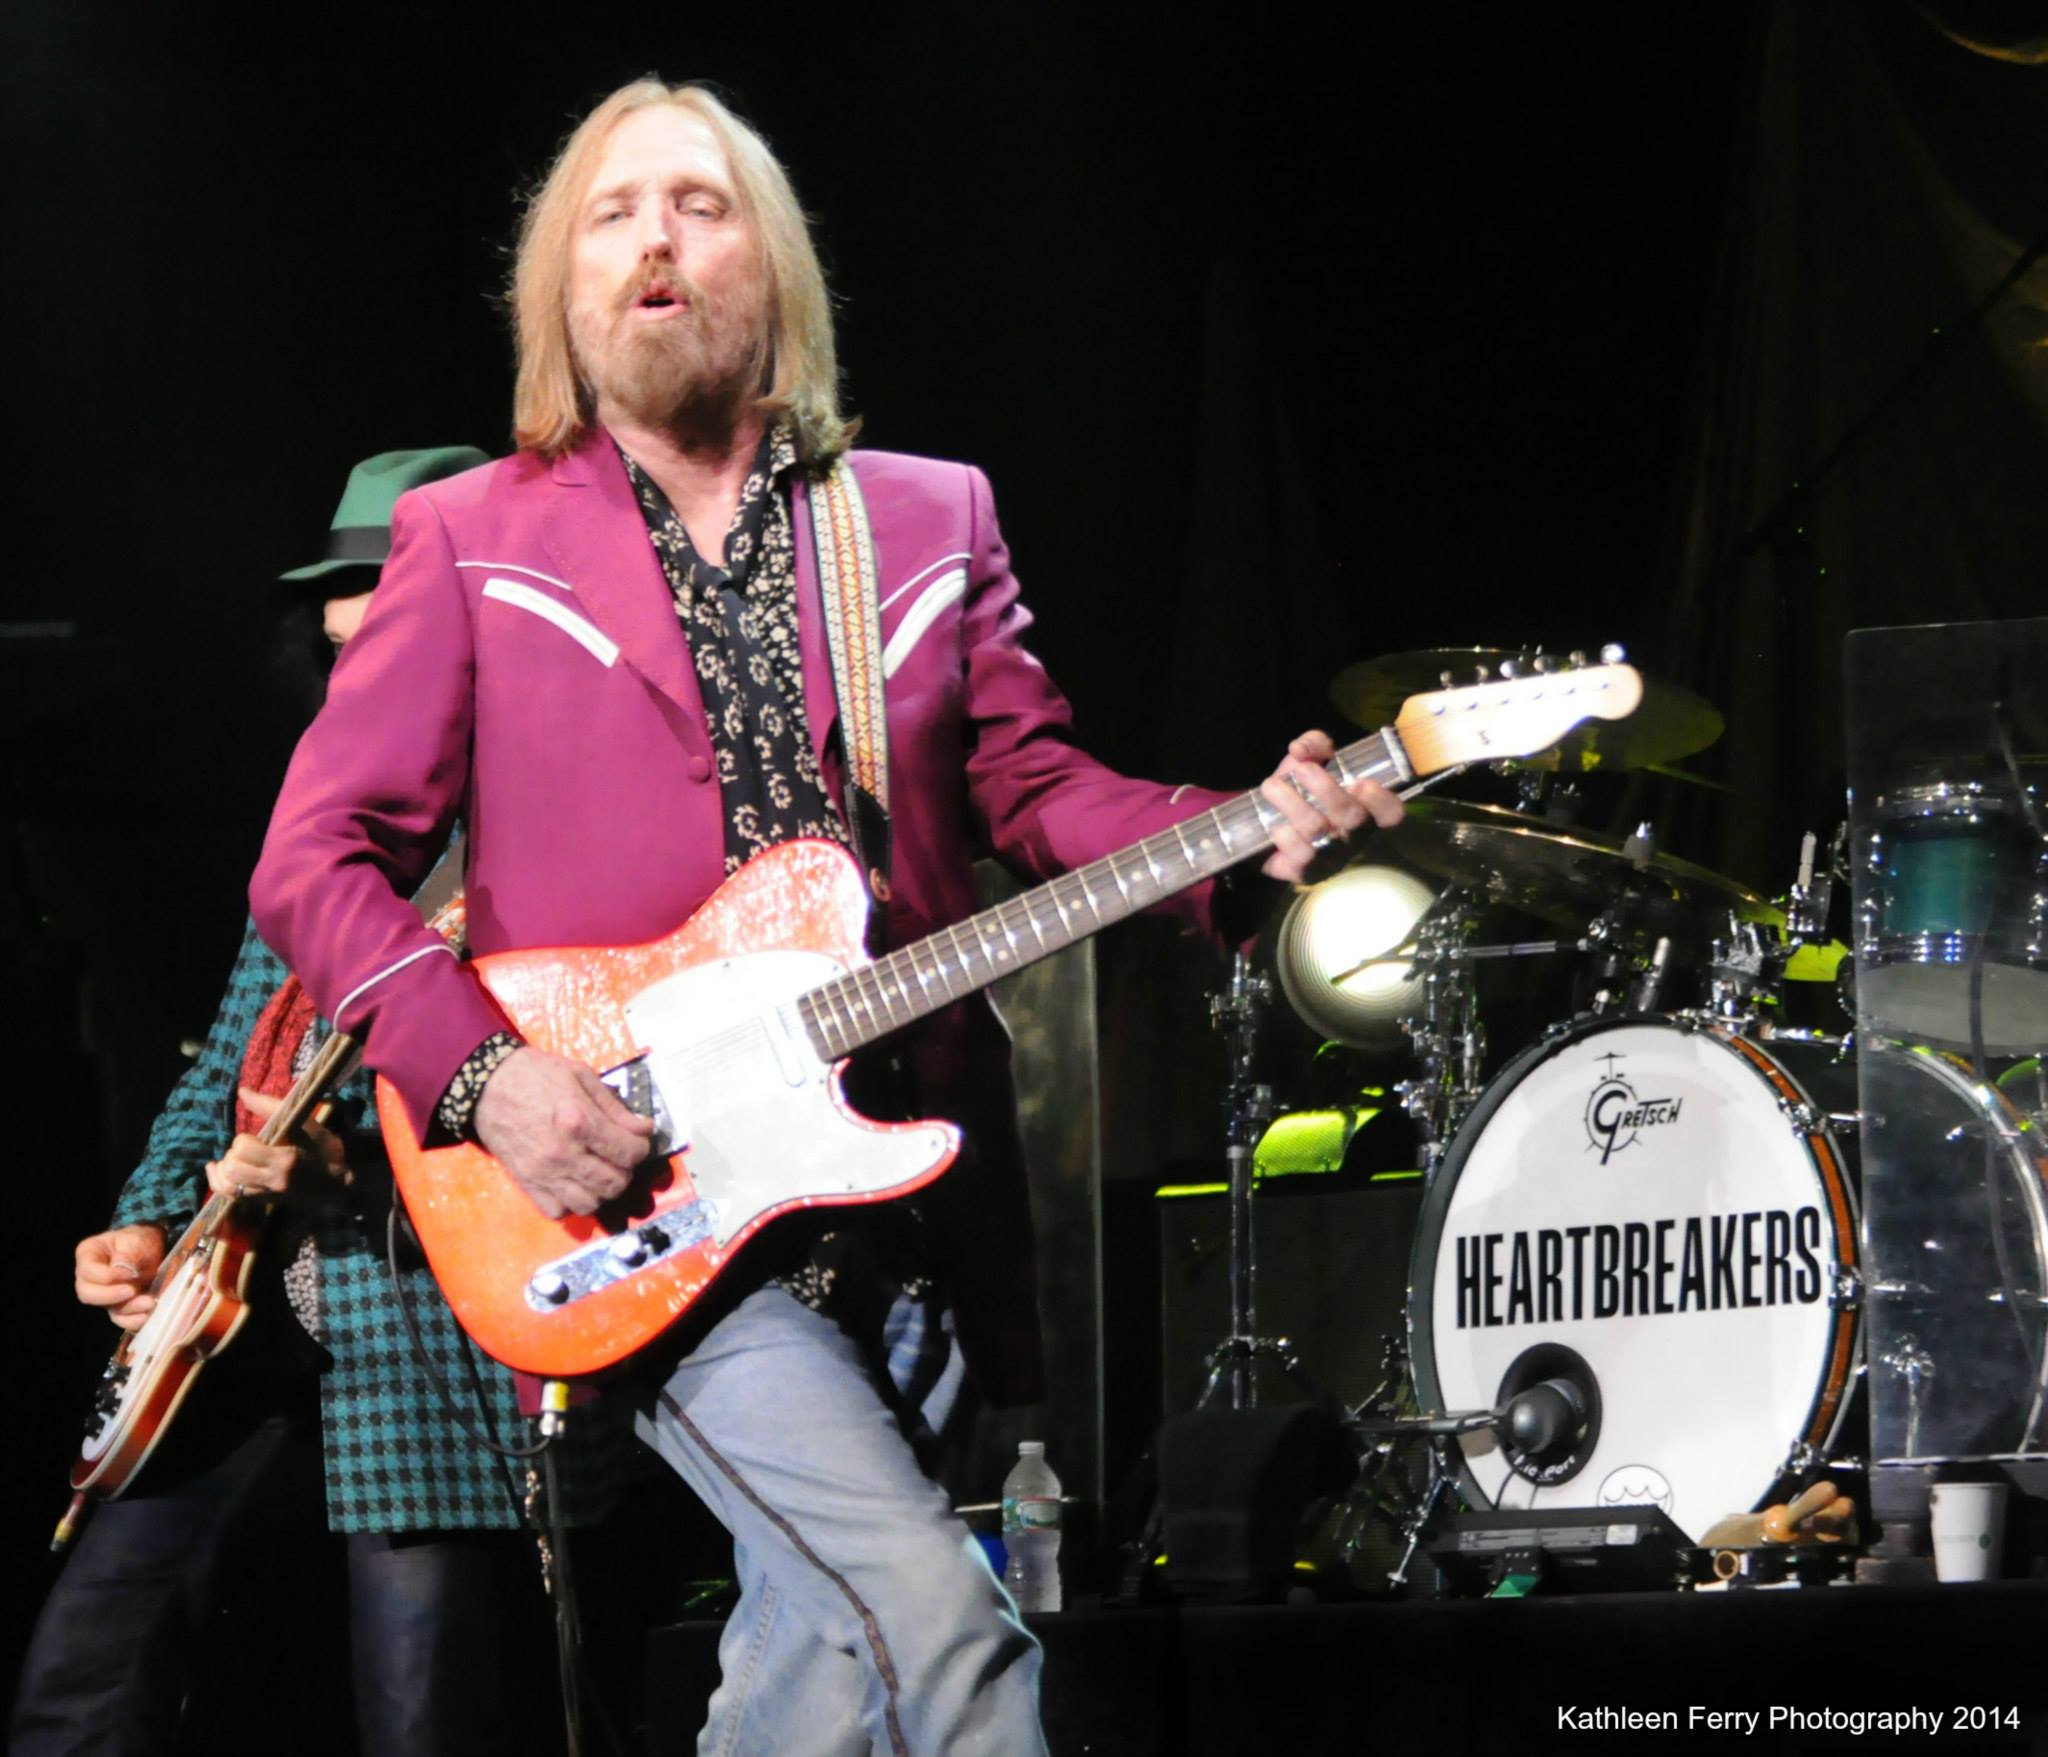 LIVE SHOW REVIEW: TOM PETTY AND THE HEARTBREAKERS